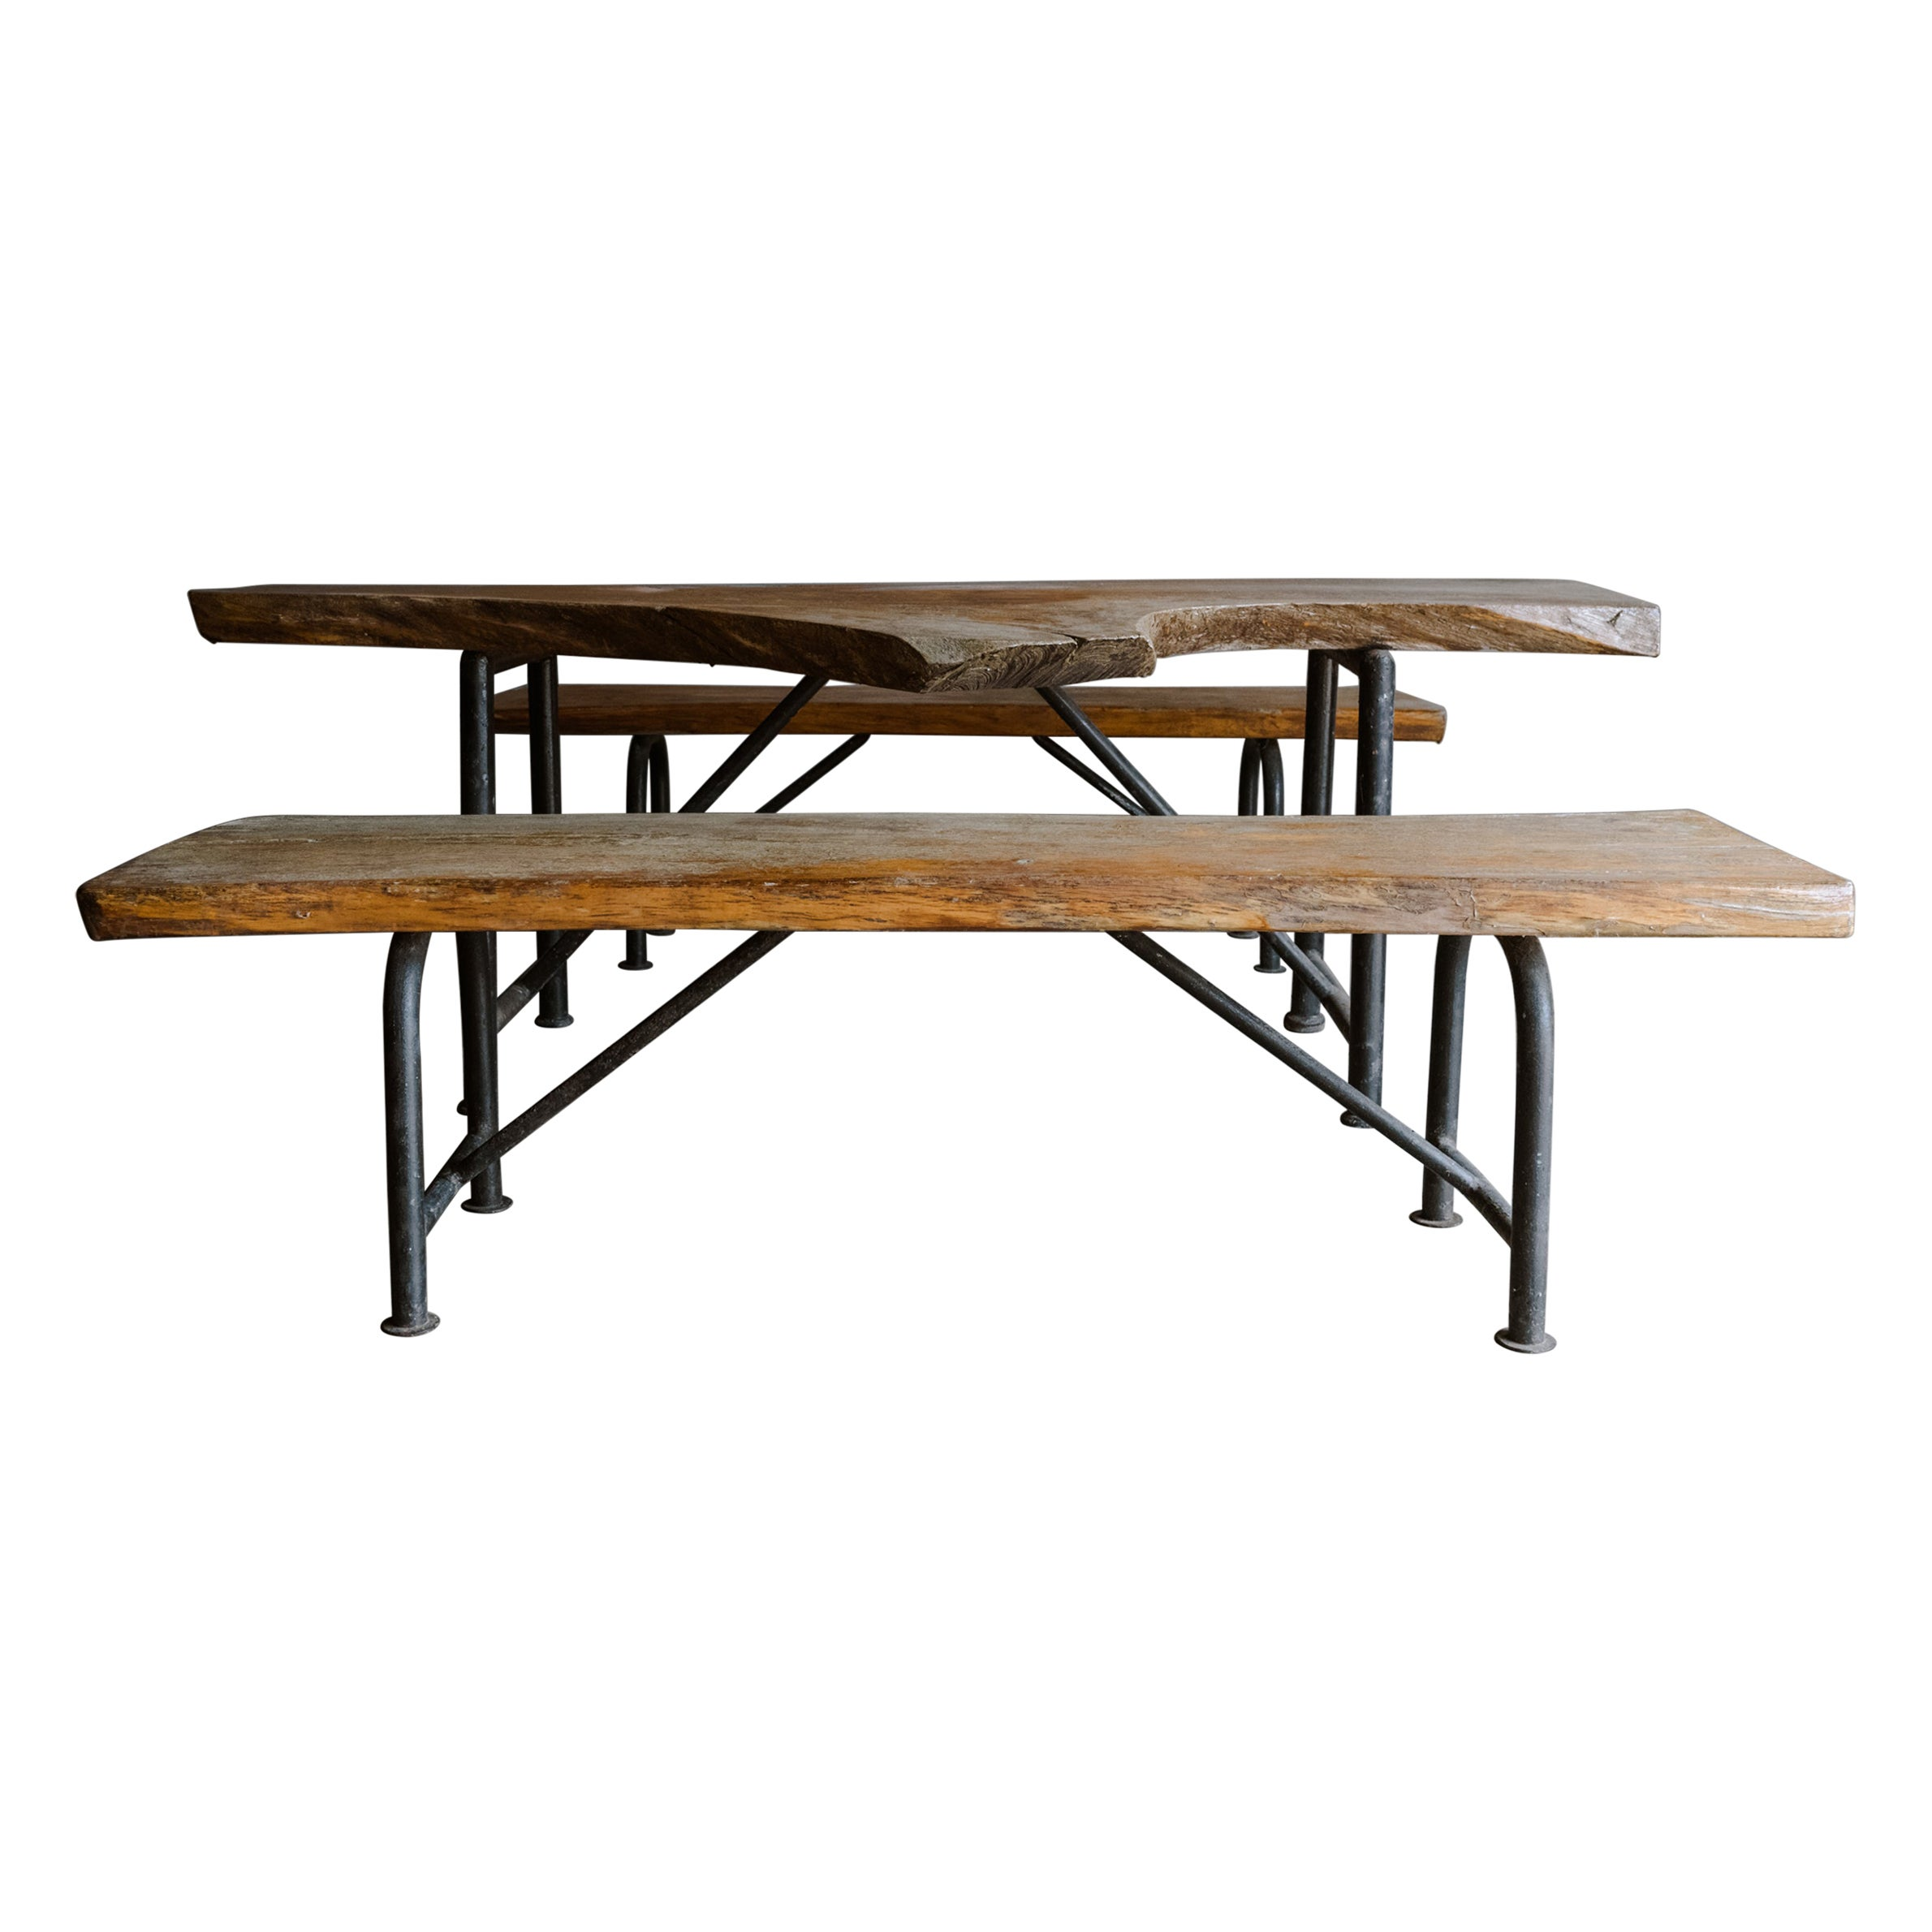 Vintage Dining Table Set from Denmark, circa 1960